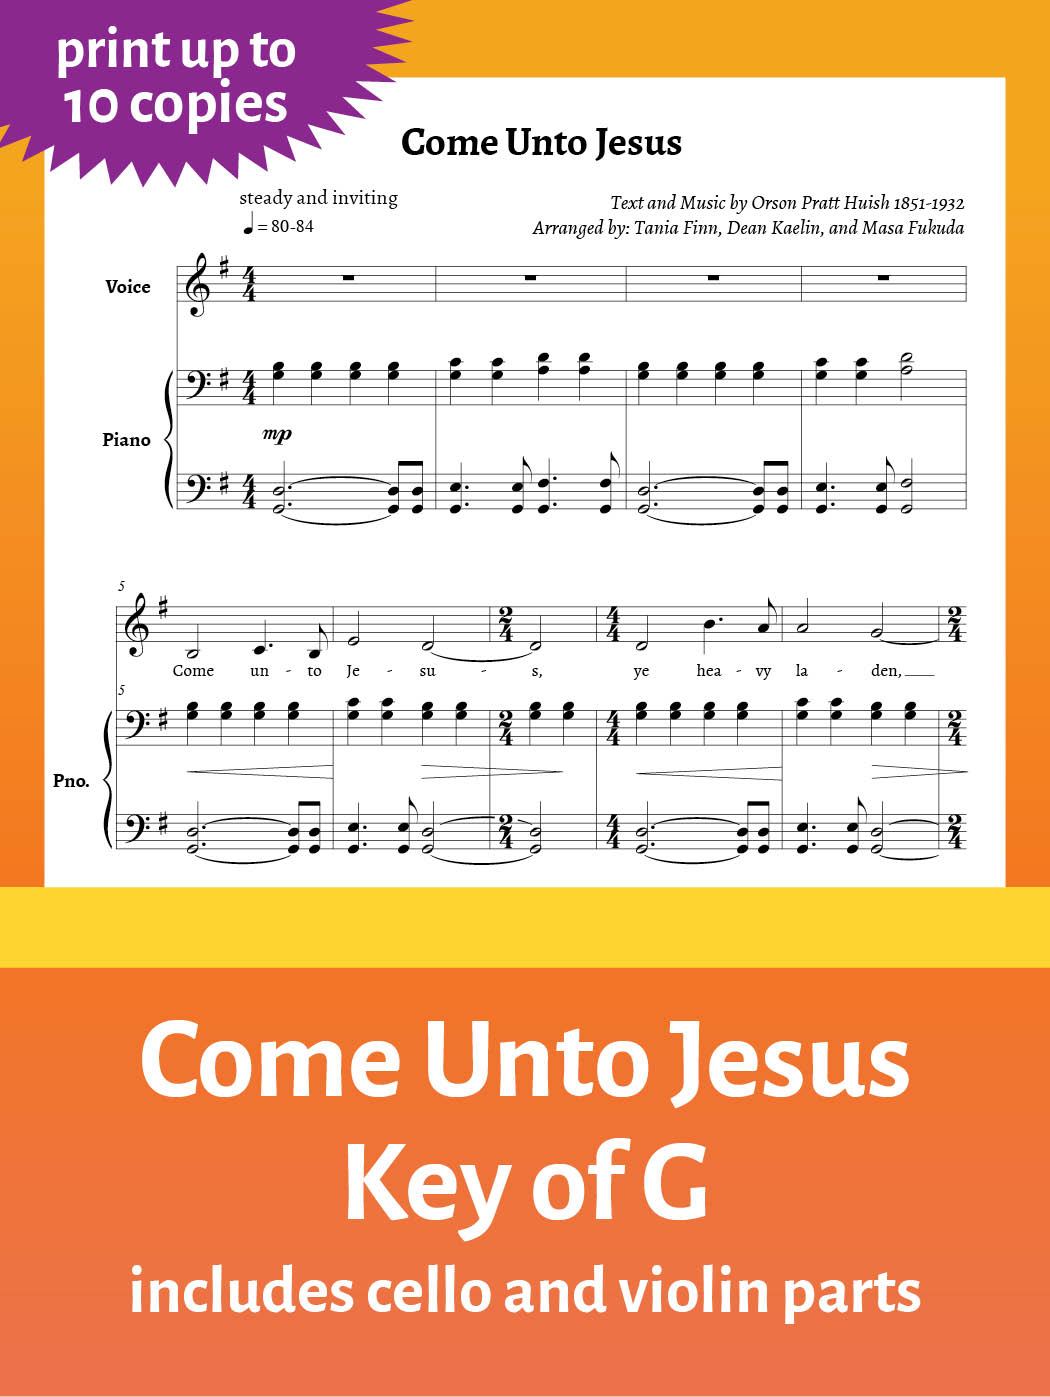 Come Unto Jesus – Sheet Music – Key of G – up to 10 copies